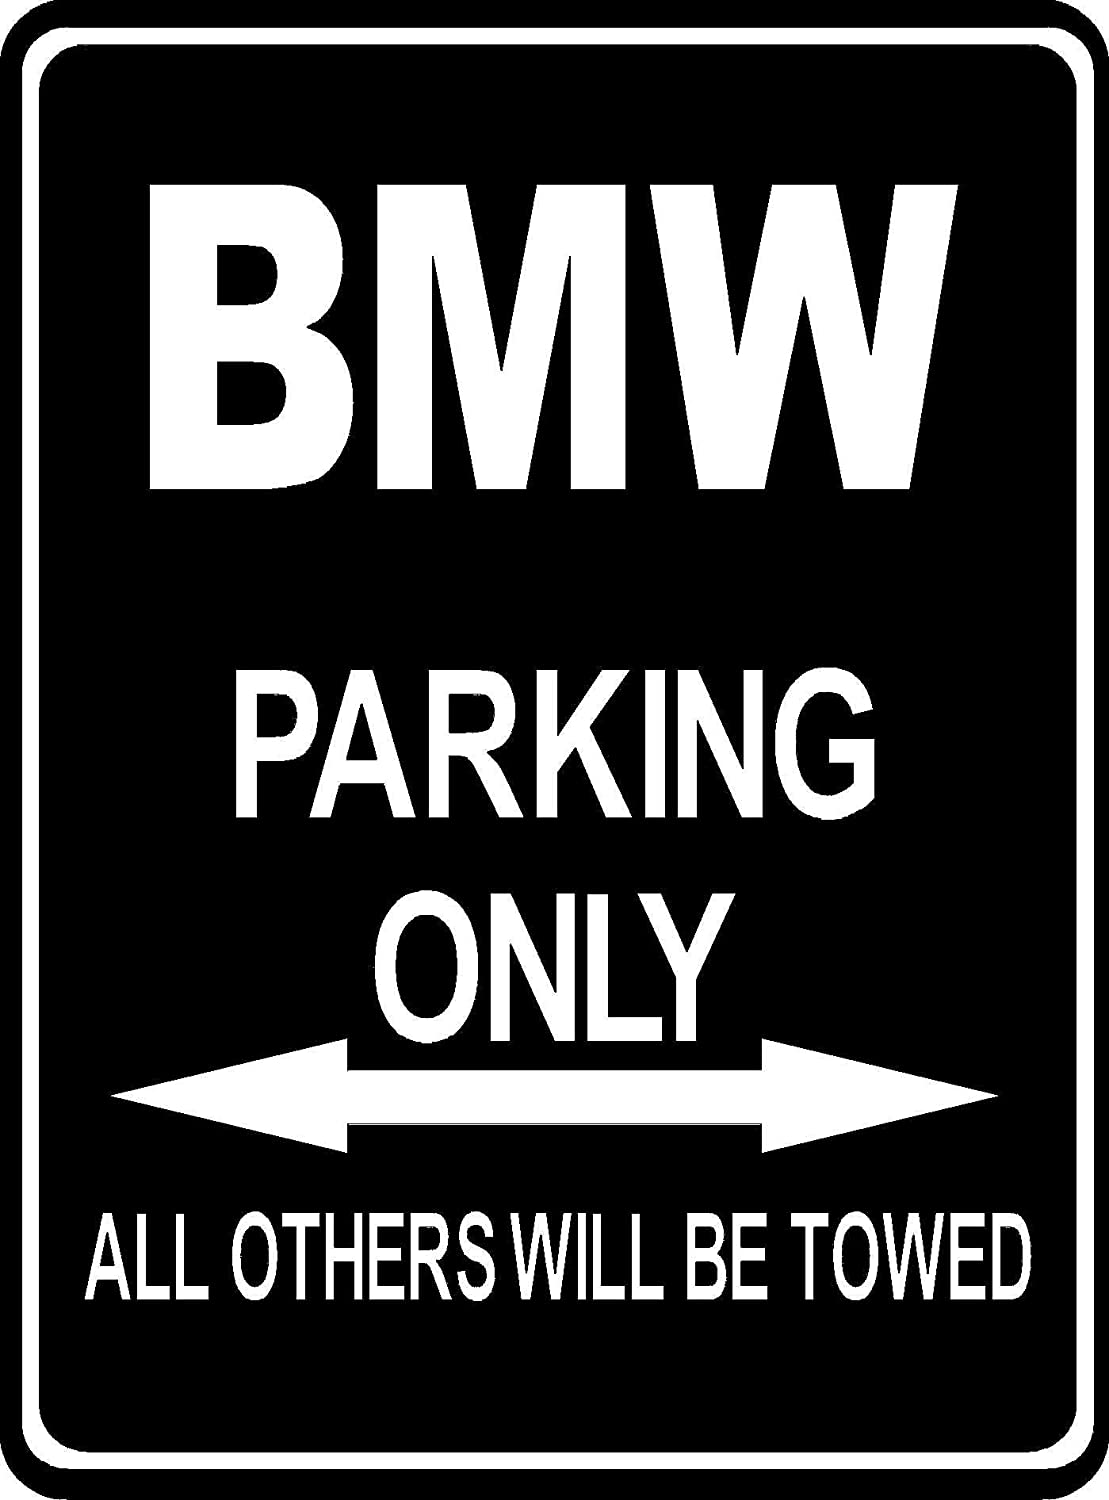 Custom Made Parksign Parking Only BMW Parking Lot Sign Amazon - Bmw parking only signs